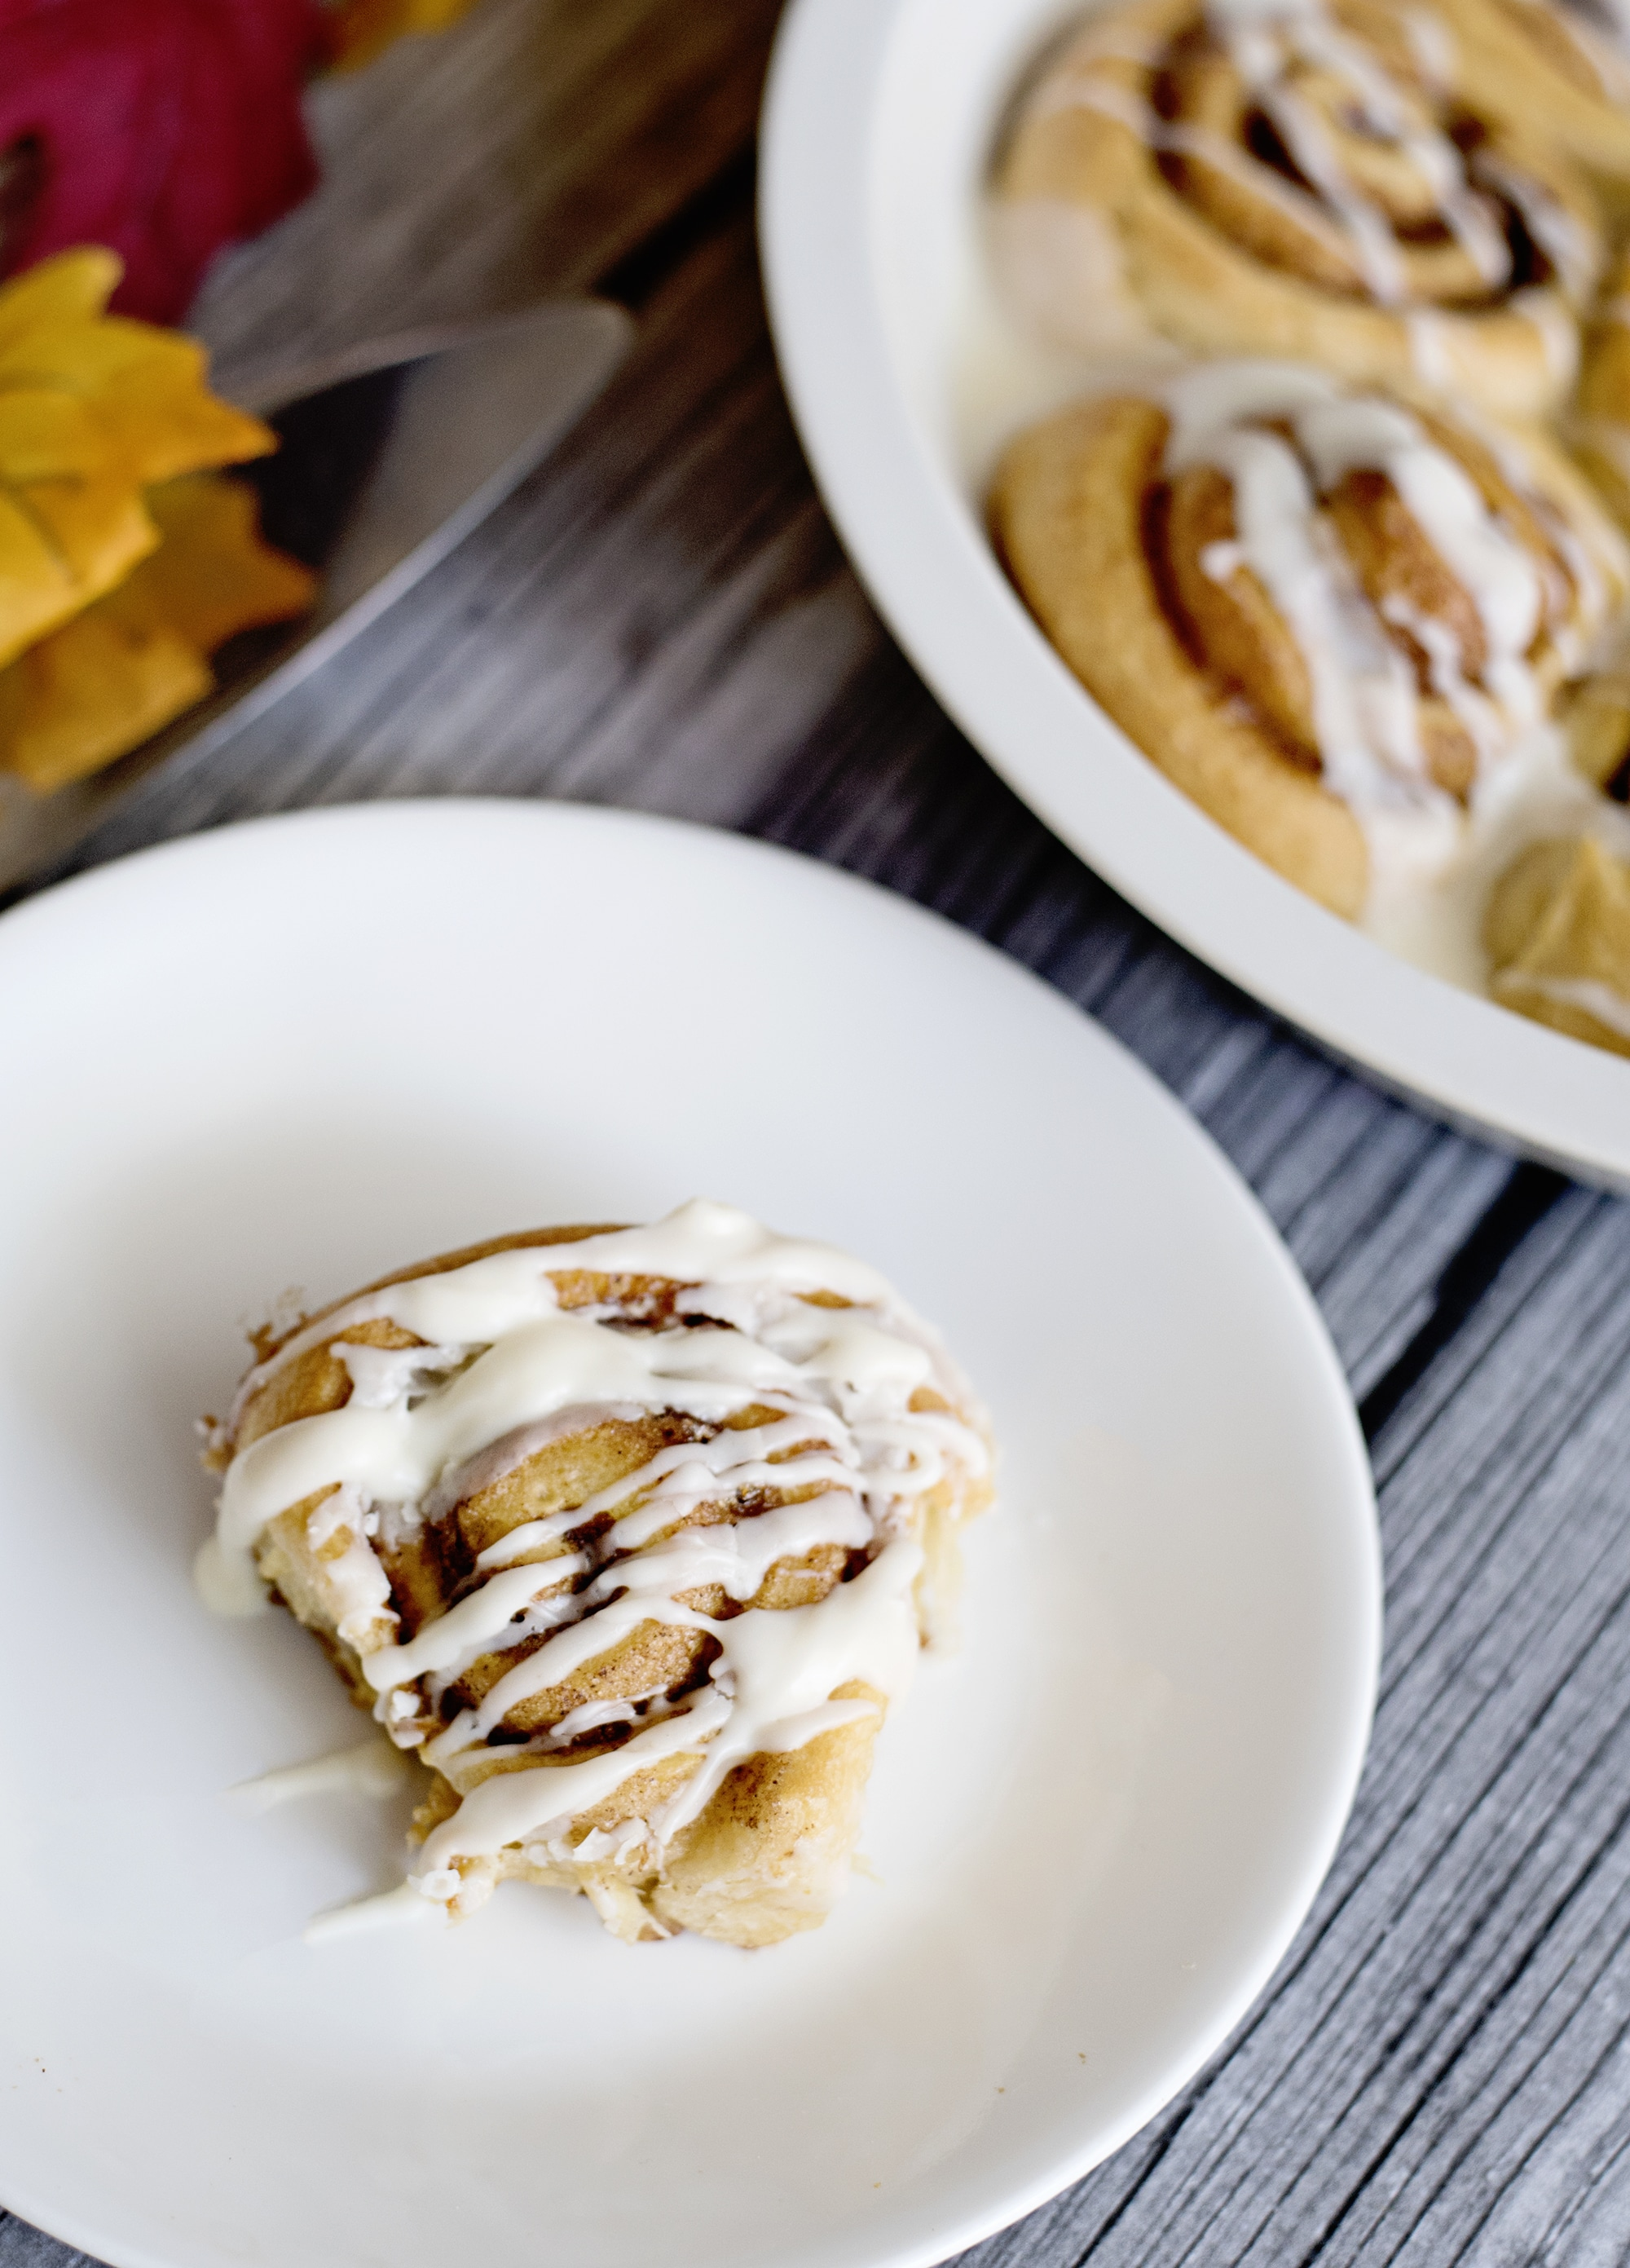 Pumpkin Spice Cinnamon Rolls On Plate. Fill your home with the delicious smell of these easy to make Pumpkin Spice Cinnamon Rolls.